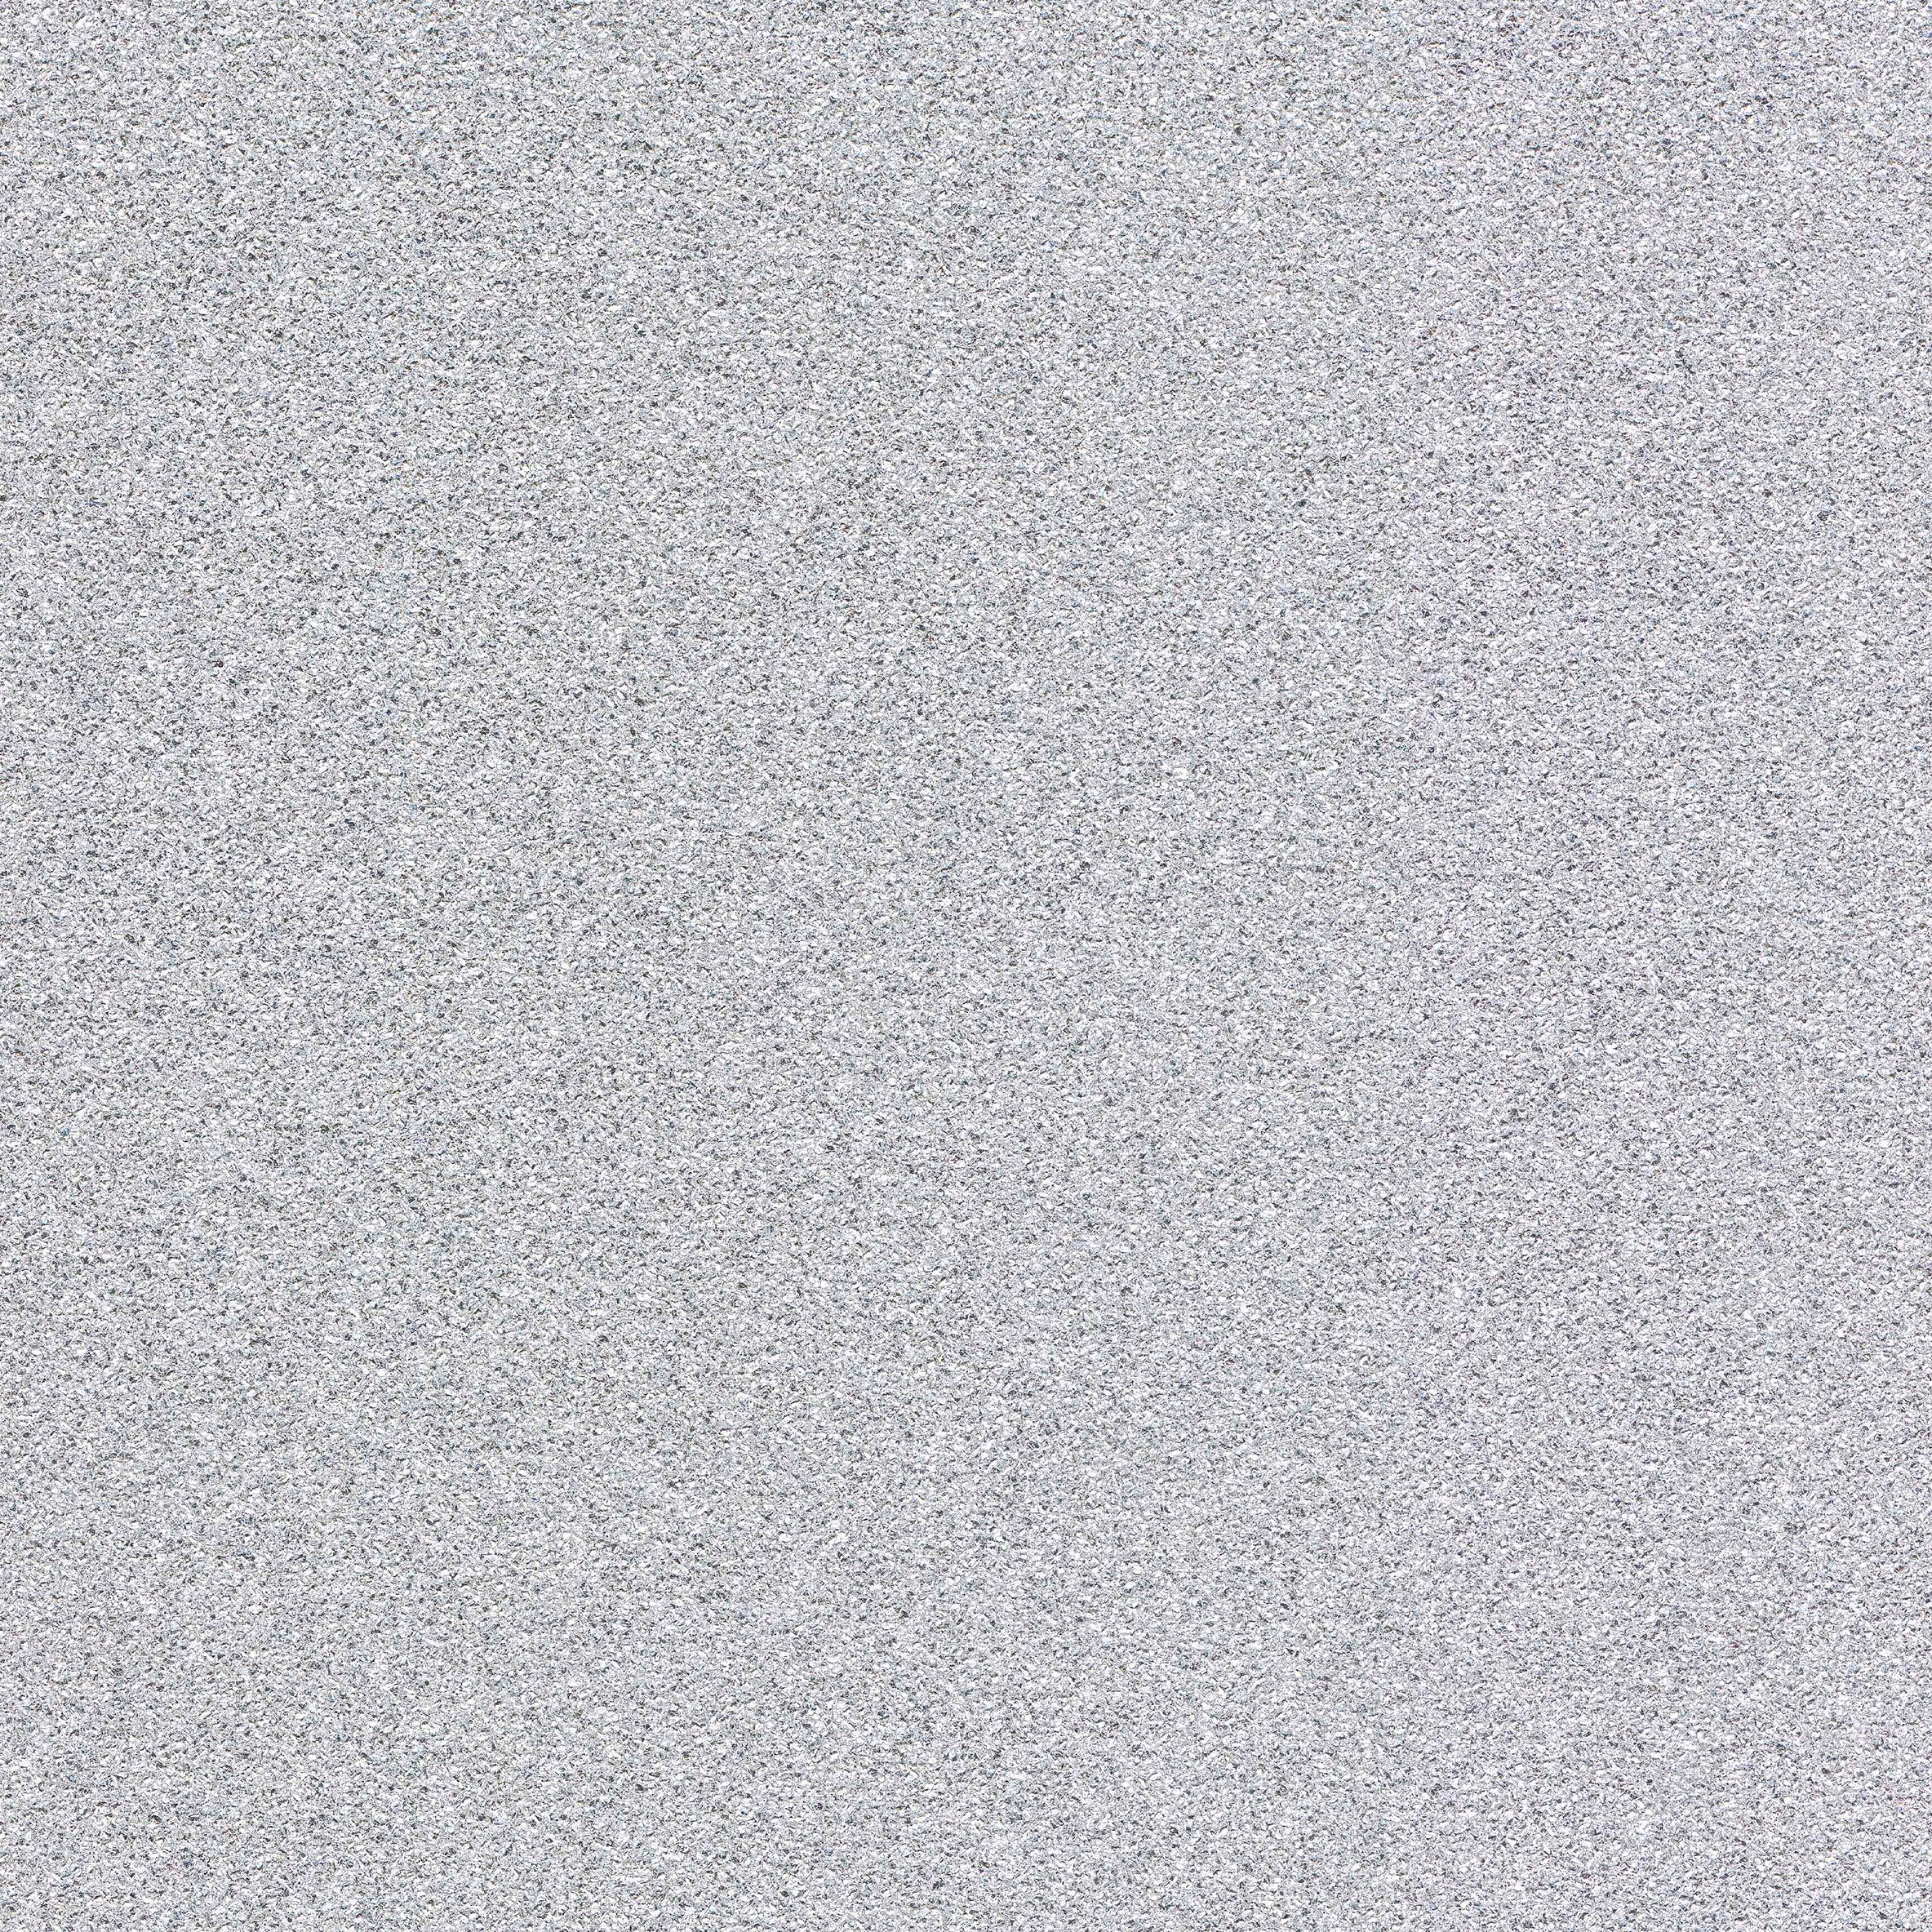 Silver Sparkle Glitter Effect Wallpaper Departments